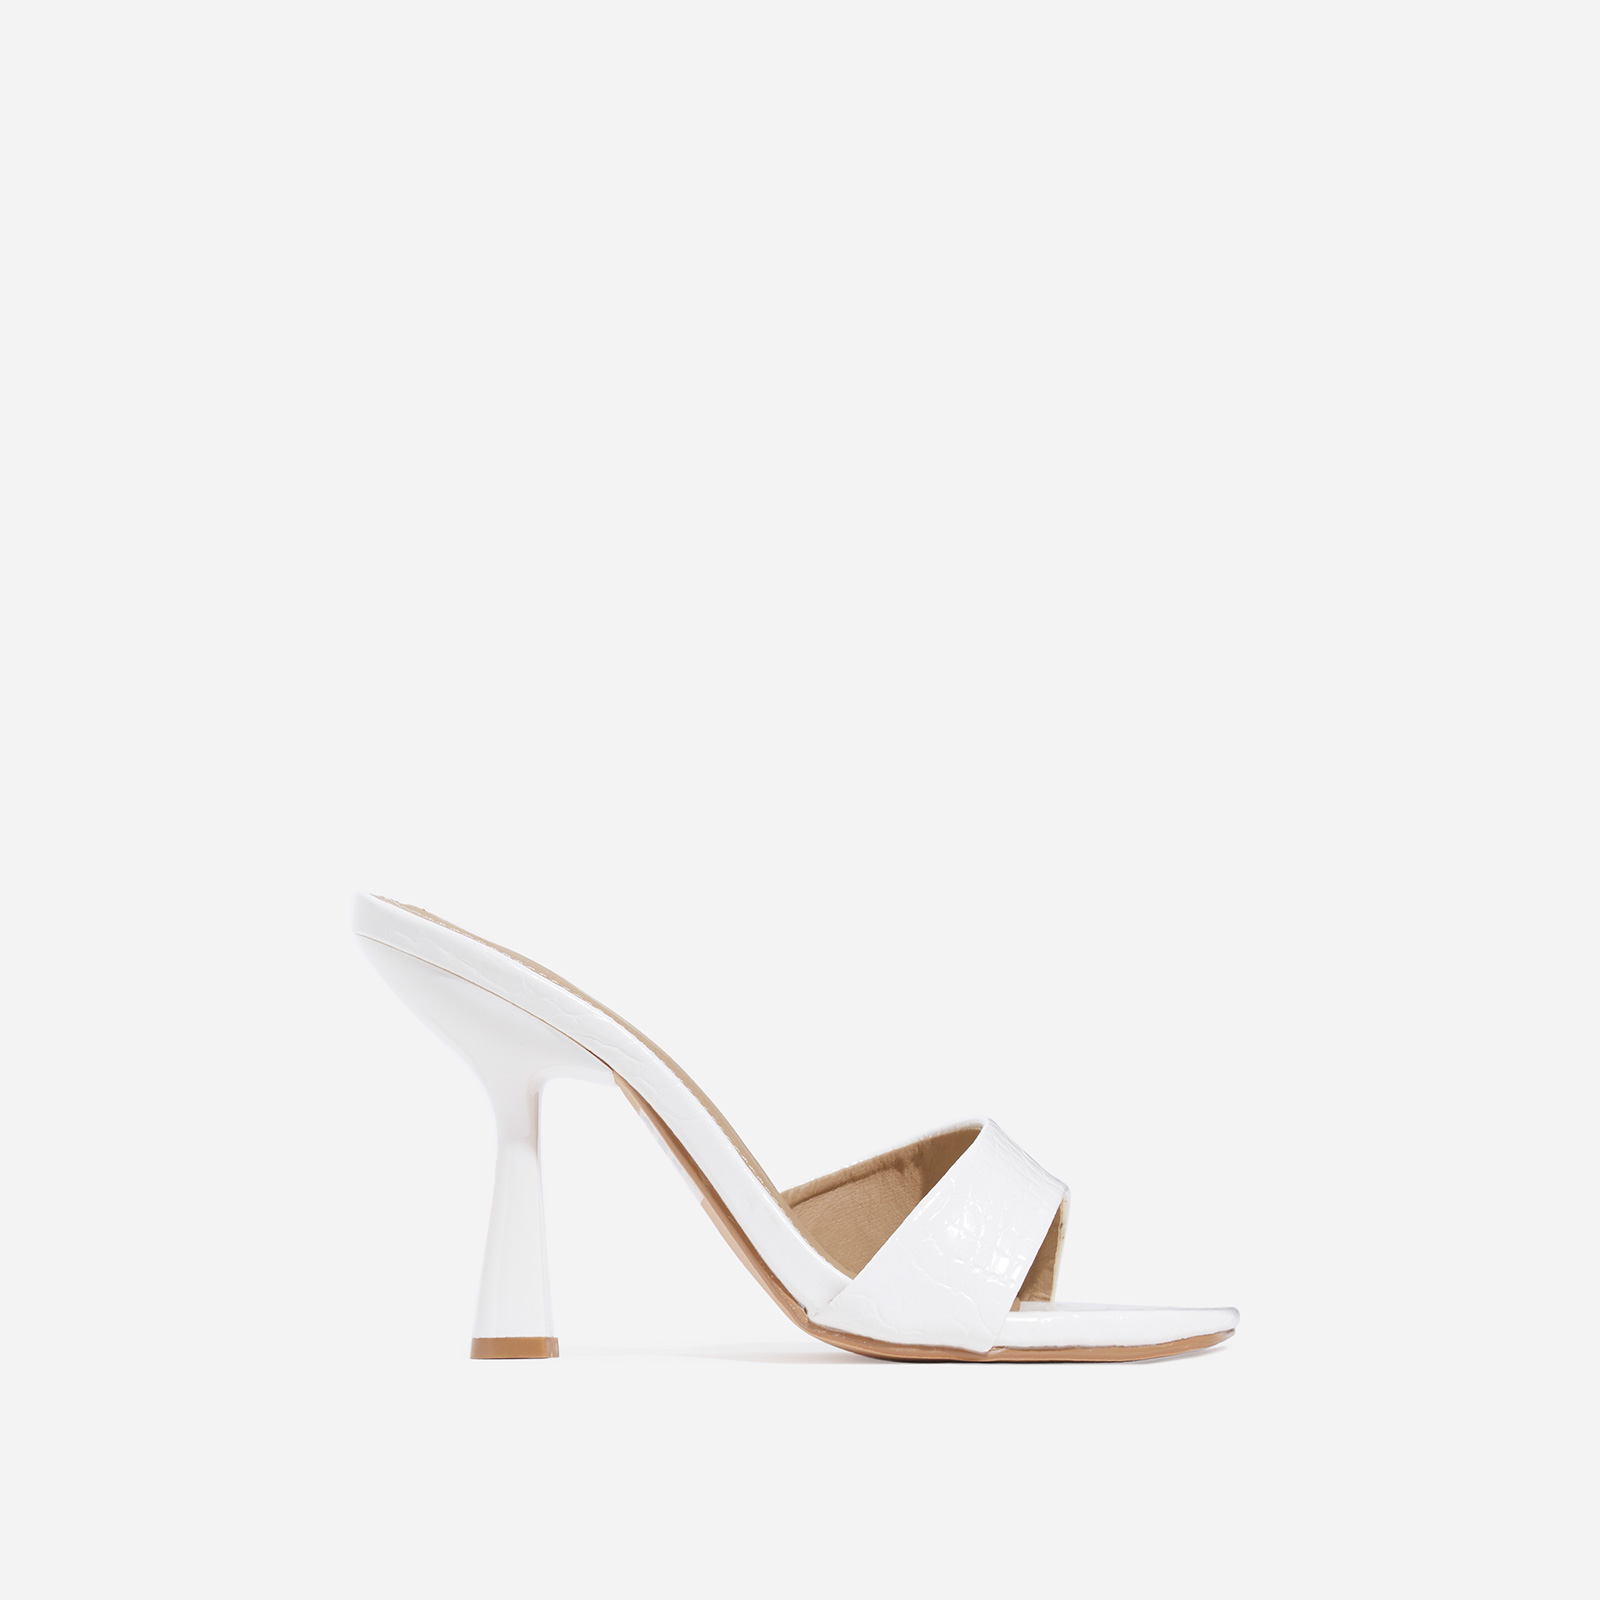 Found Square Peep Toe Heel Mule In White Snake Print Faux Leather